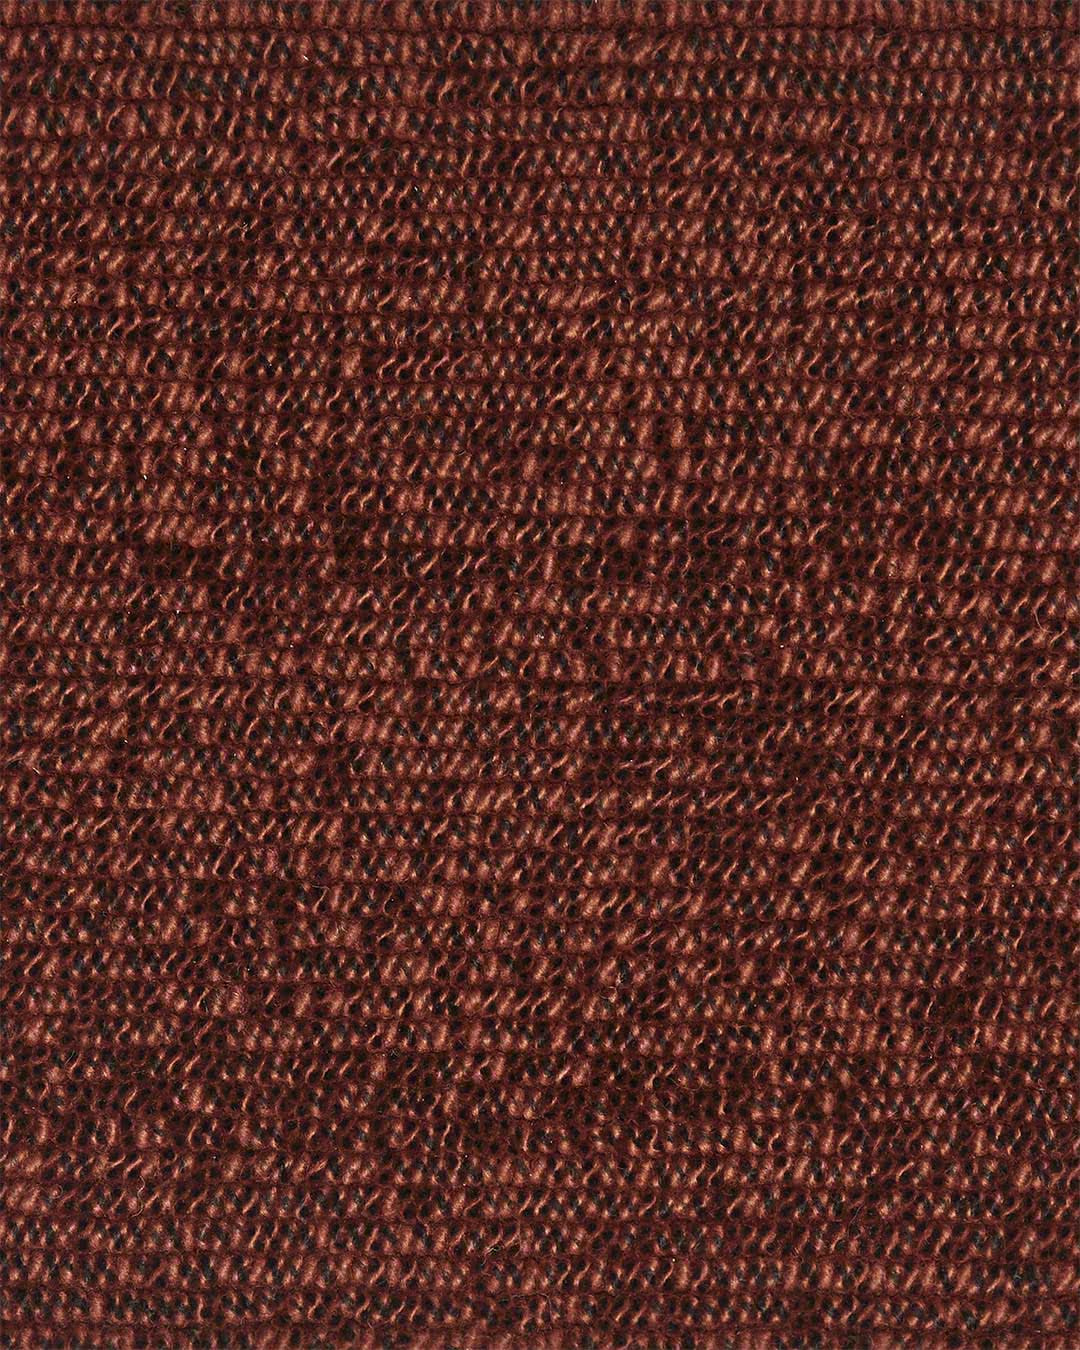 Close up view of textured Coral Tip Shear Loop rug in brown colour